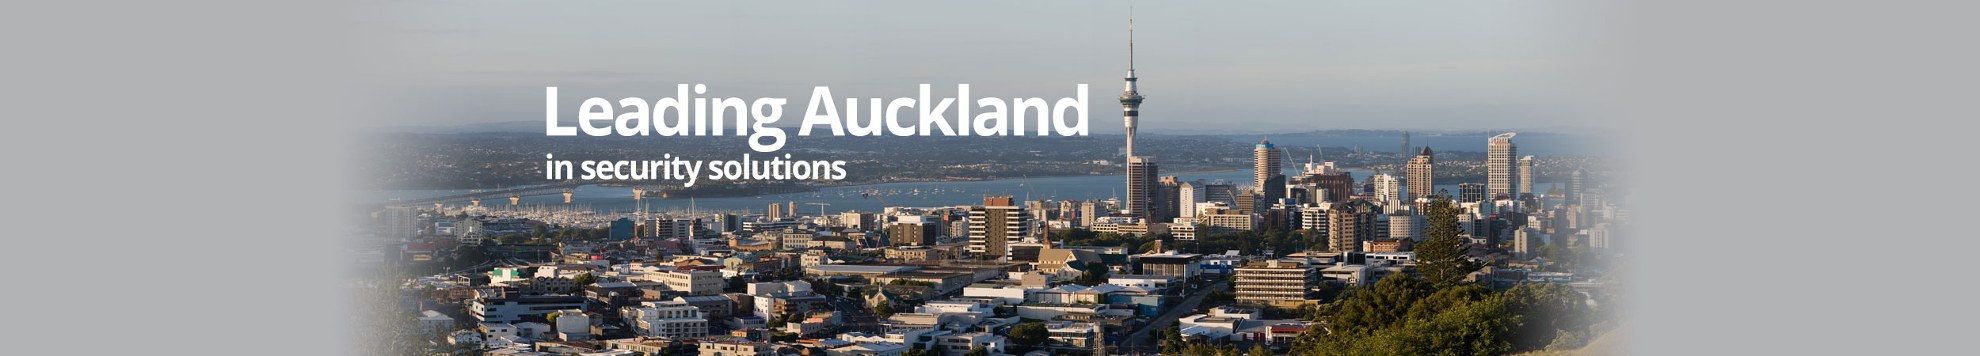 Leading Auckland in commercial security